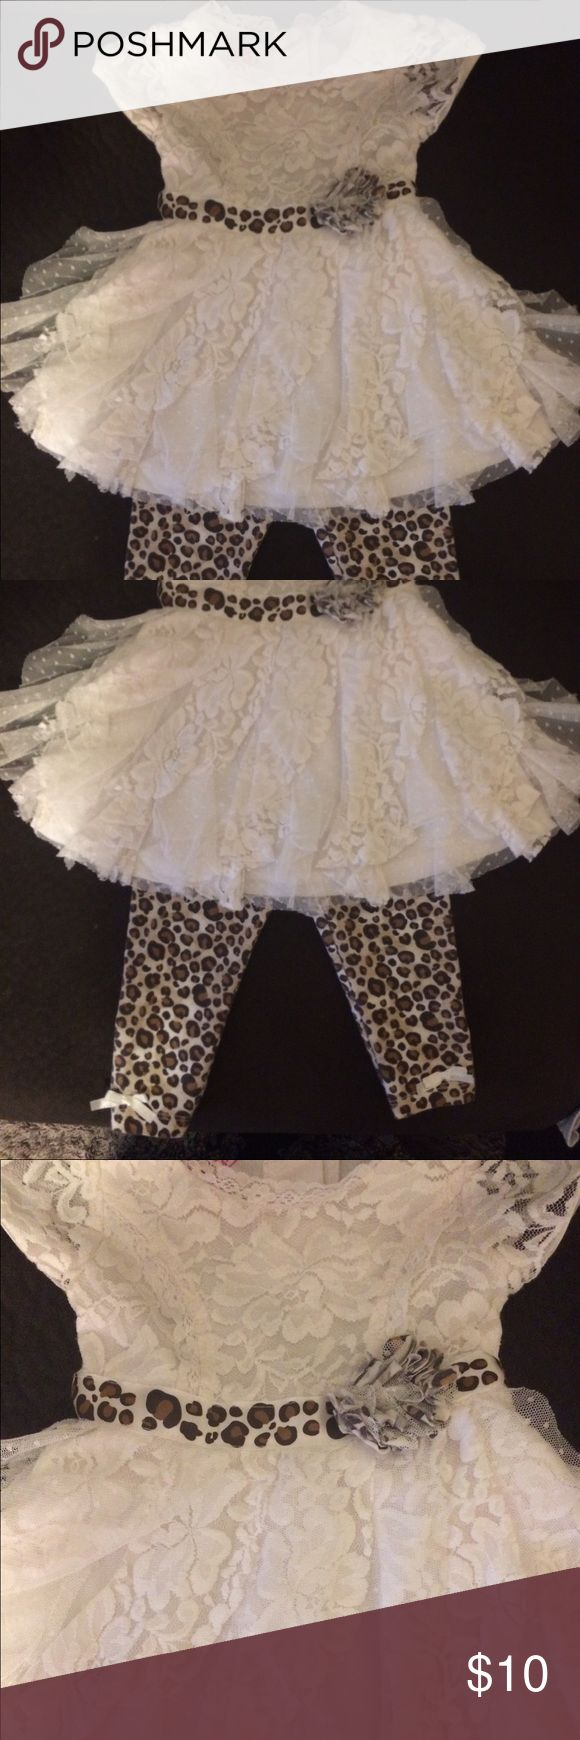 Lace & Cheetah Outfit 12 month Never worn only been washed in baby detergent! Smoke free home! Matching Sets